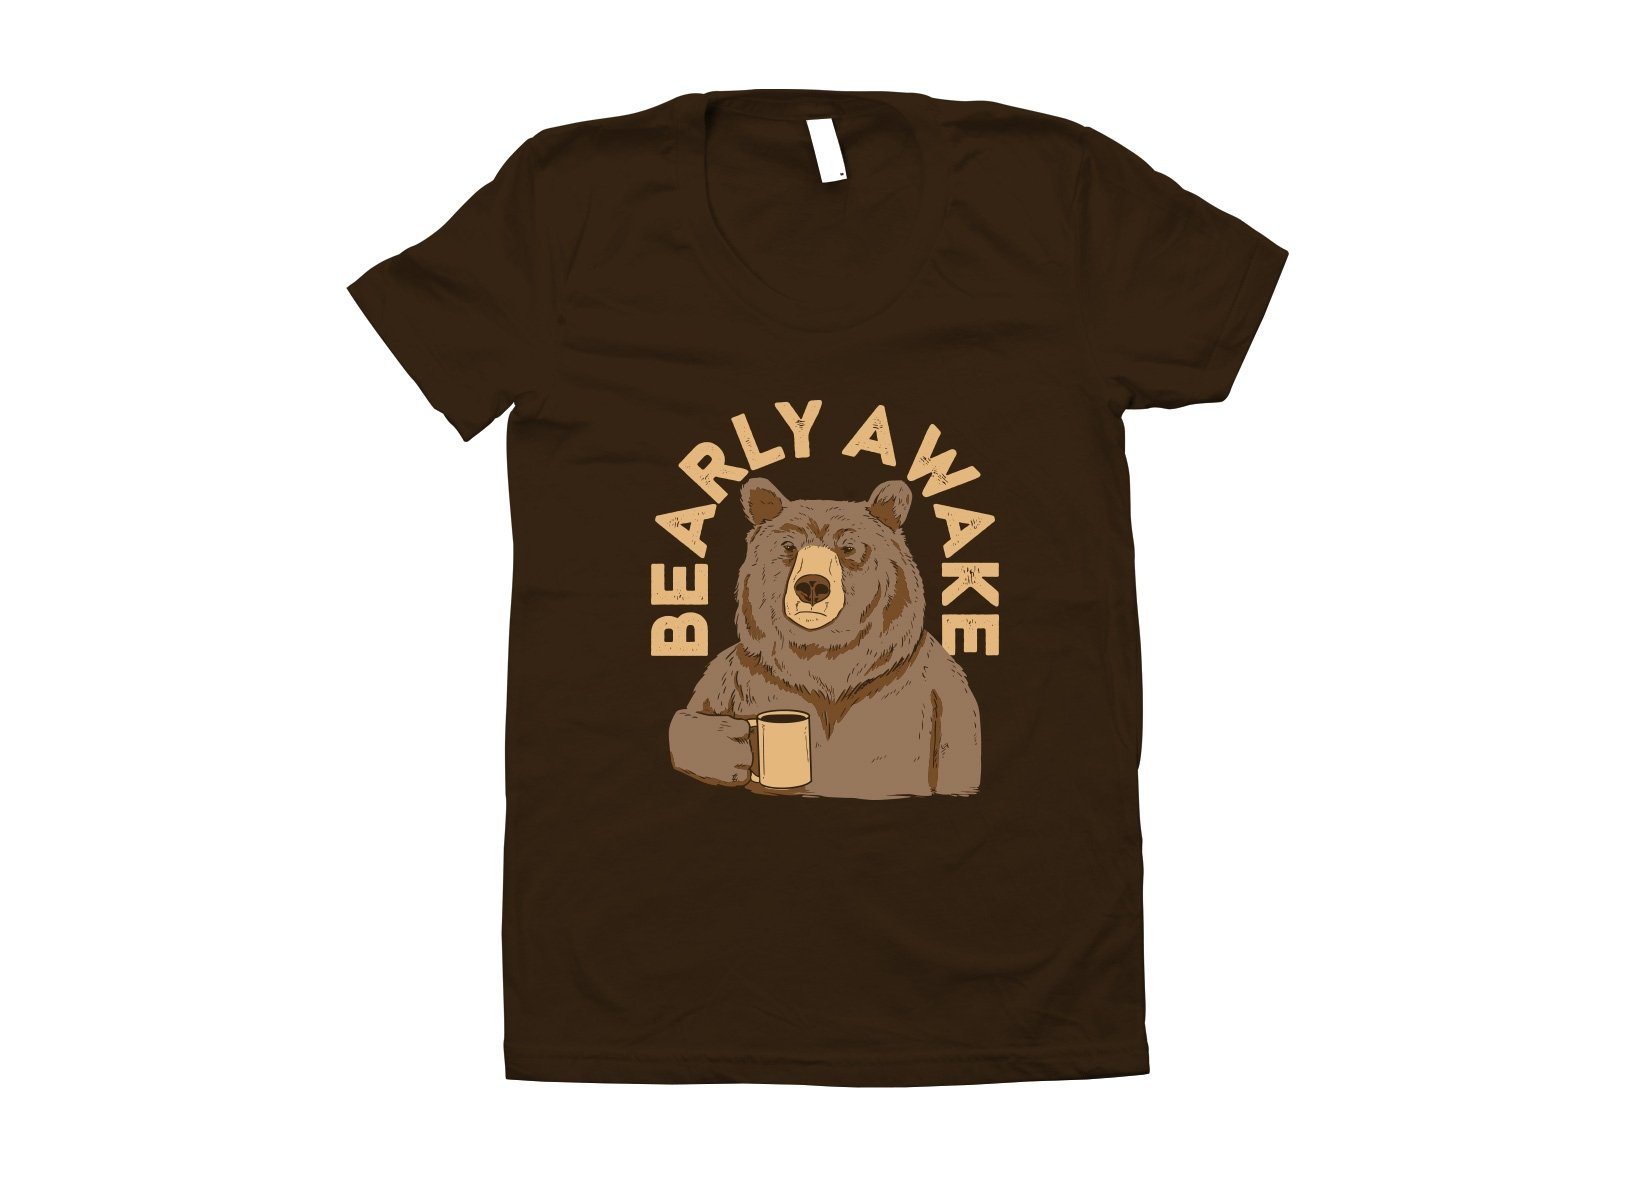 Bearly Awake on Juniors T-Shirt